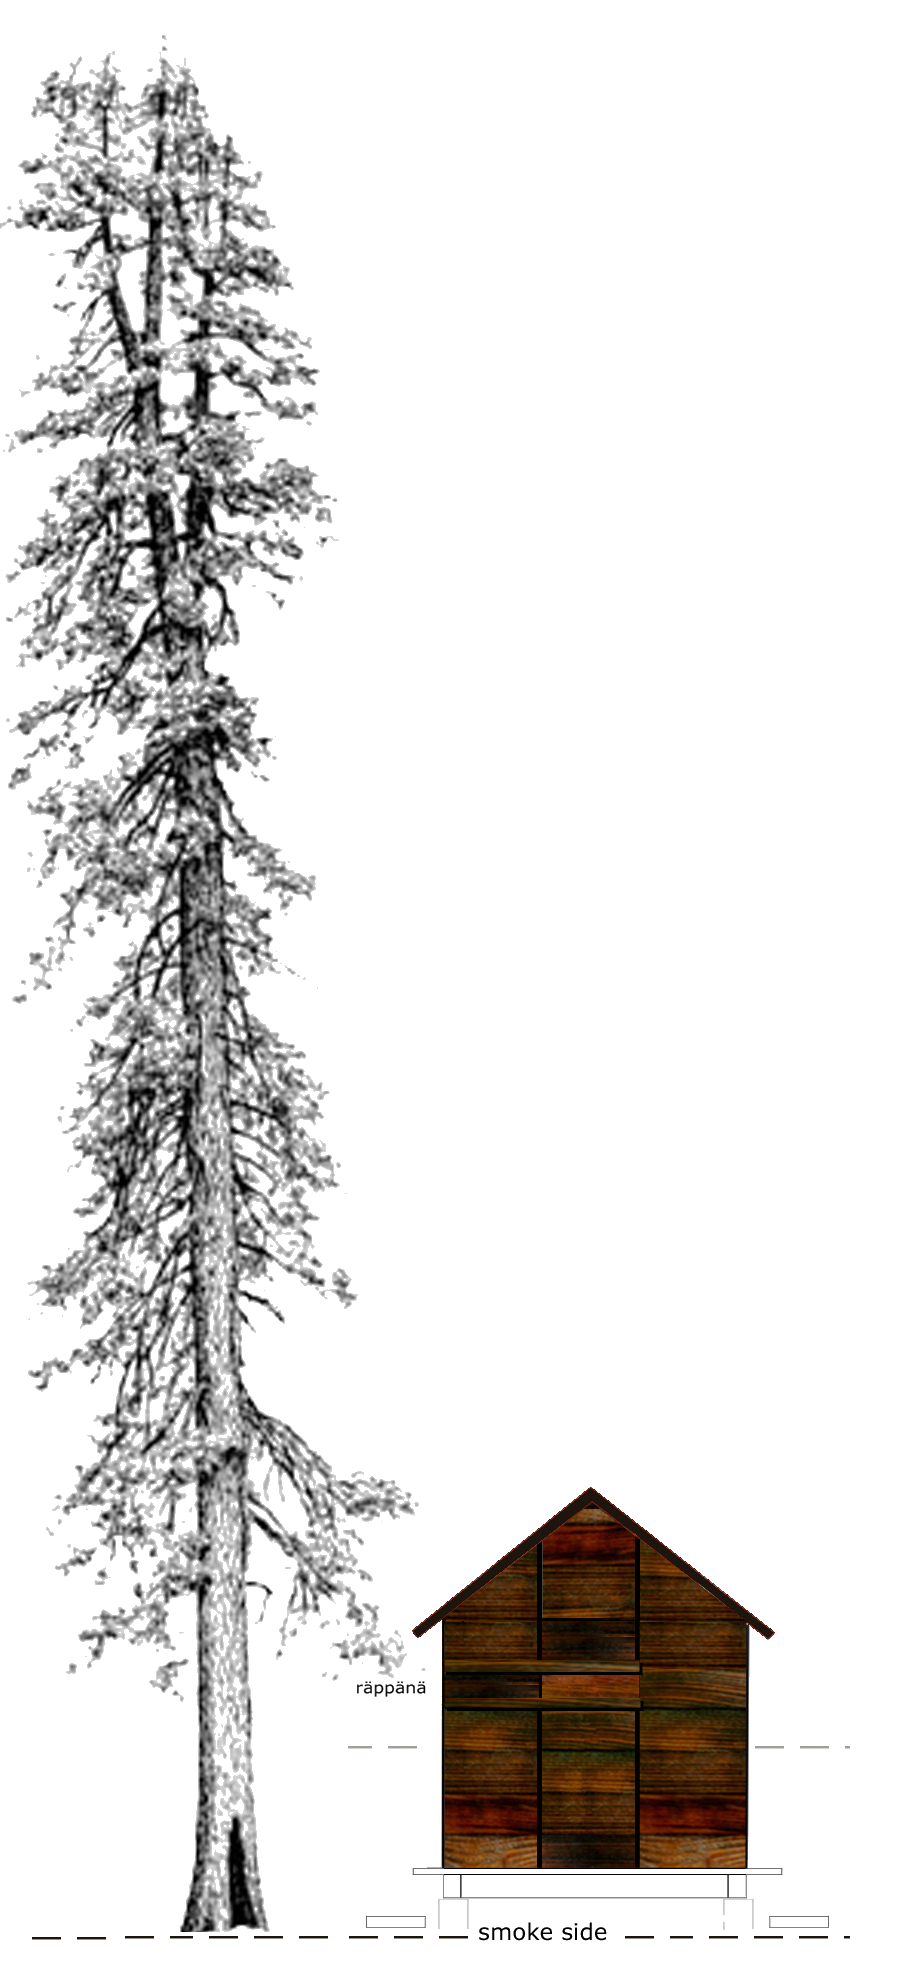 SAUNA_SIDE_ELEV_TREE.png